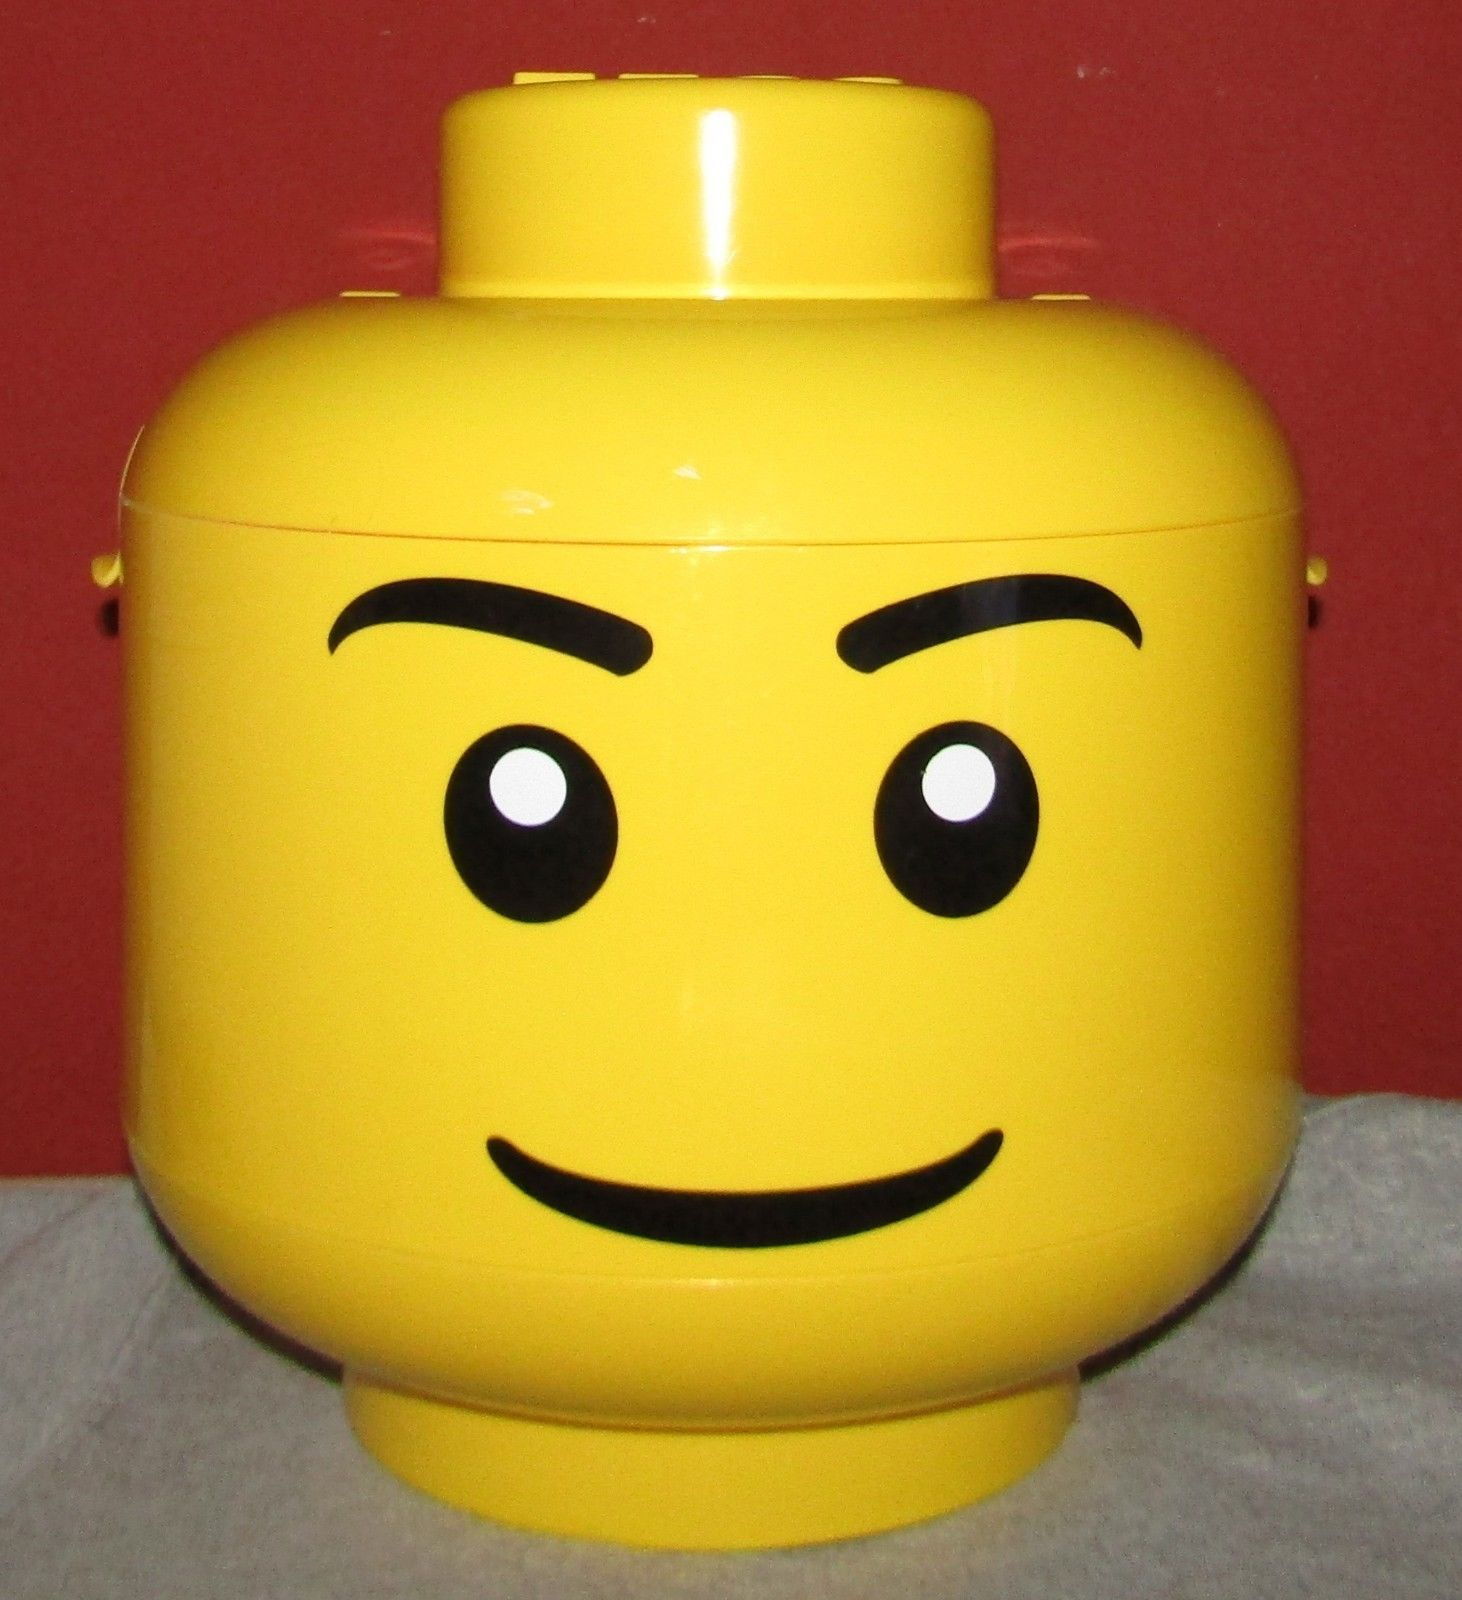 Large Lego Head Storage Container / Sorter With Two Trays And Handle  sc 1 st  Pinterest & Large Lego Head Storage Container / Sorter With Two Trays And Handle ...